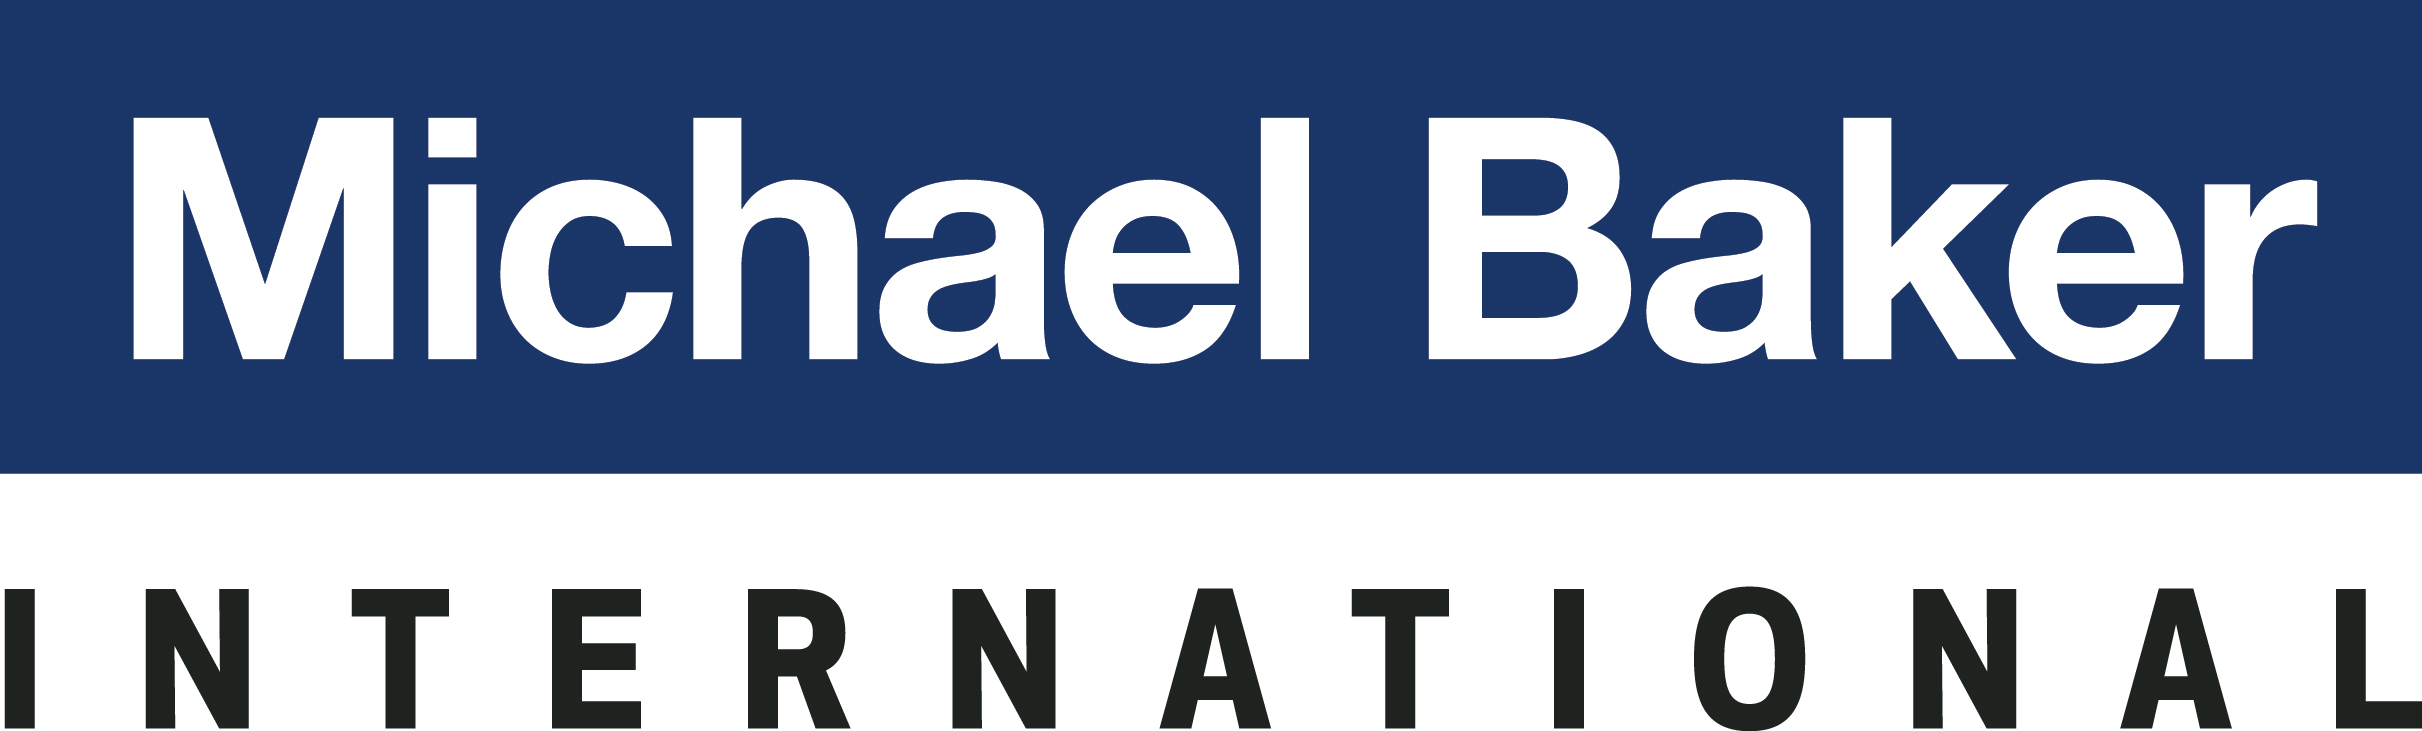 http://planningpa.org/wp-content/uploads/gravity_forms/24-e73489f0e46eb50394c6404e8233855e/2016/06/Michael-Baker-International-logo-color-3.jpg